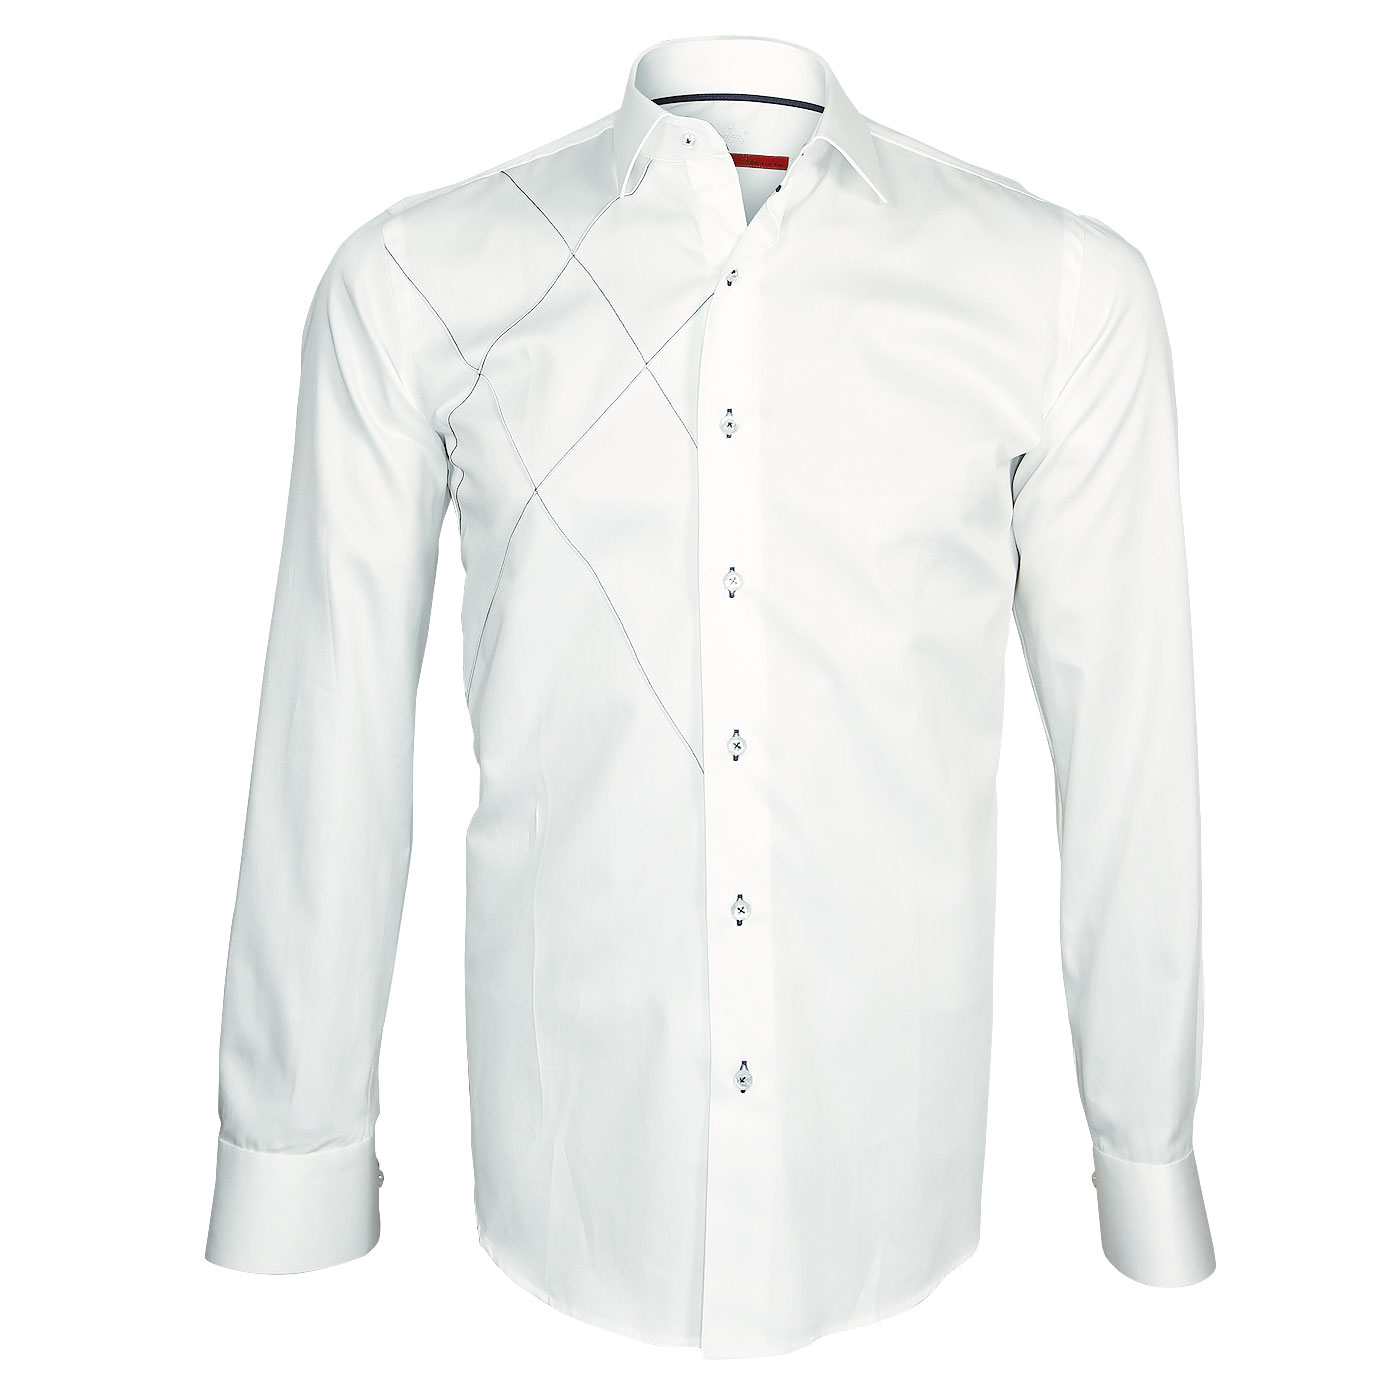 Fashion Dress Shirt